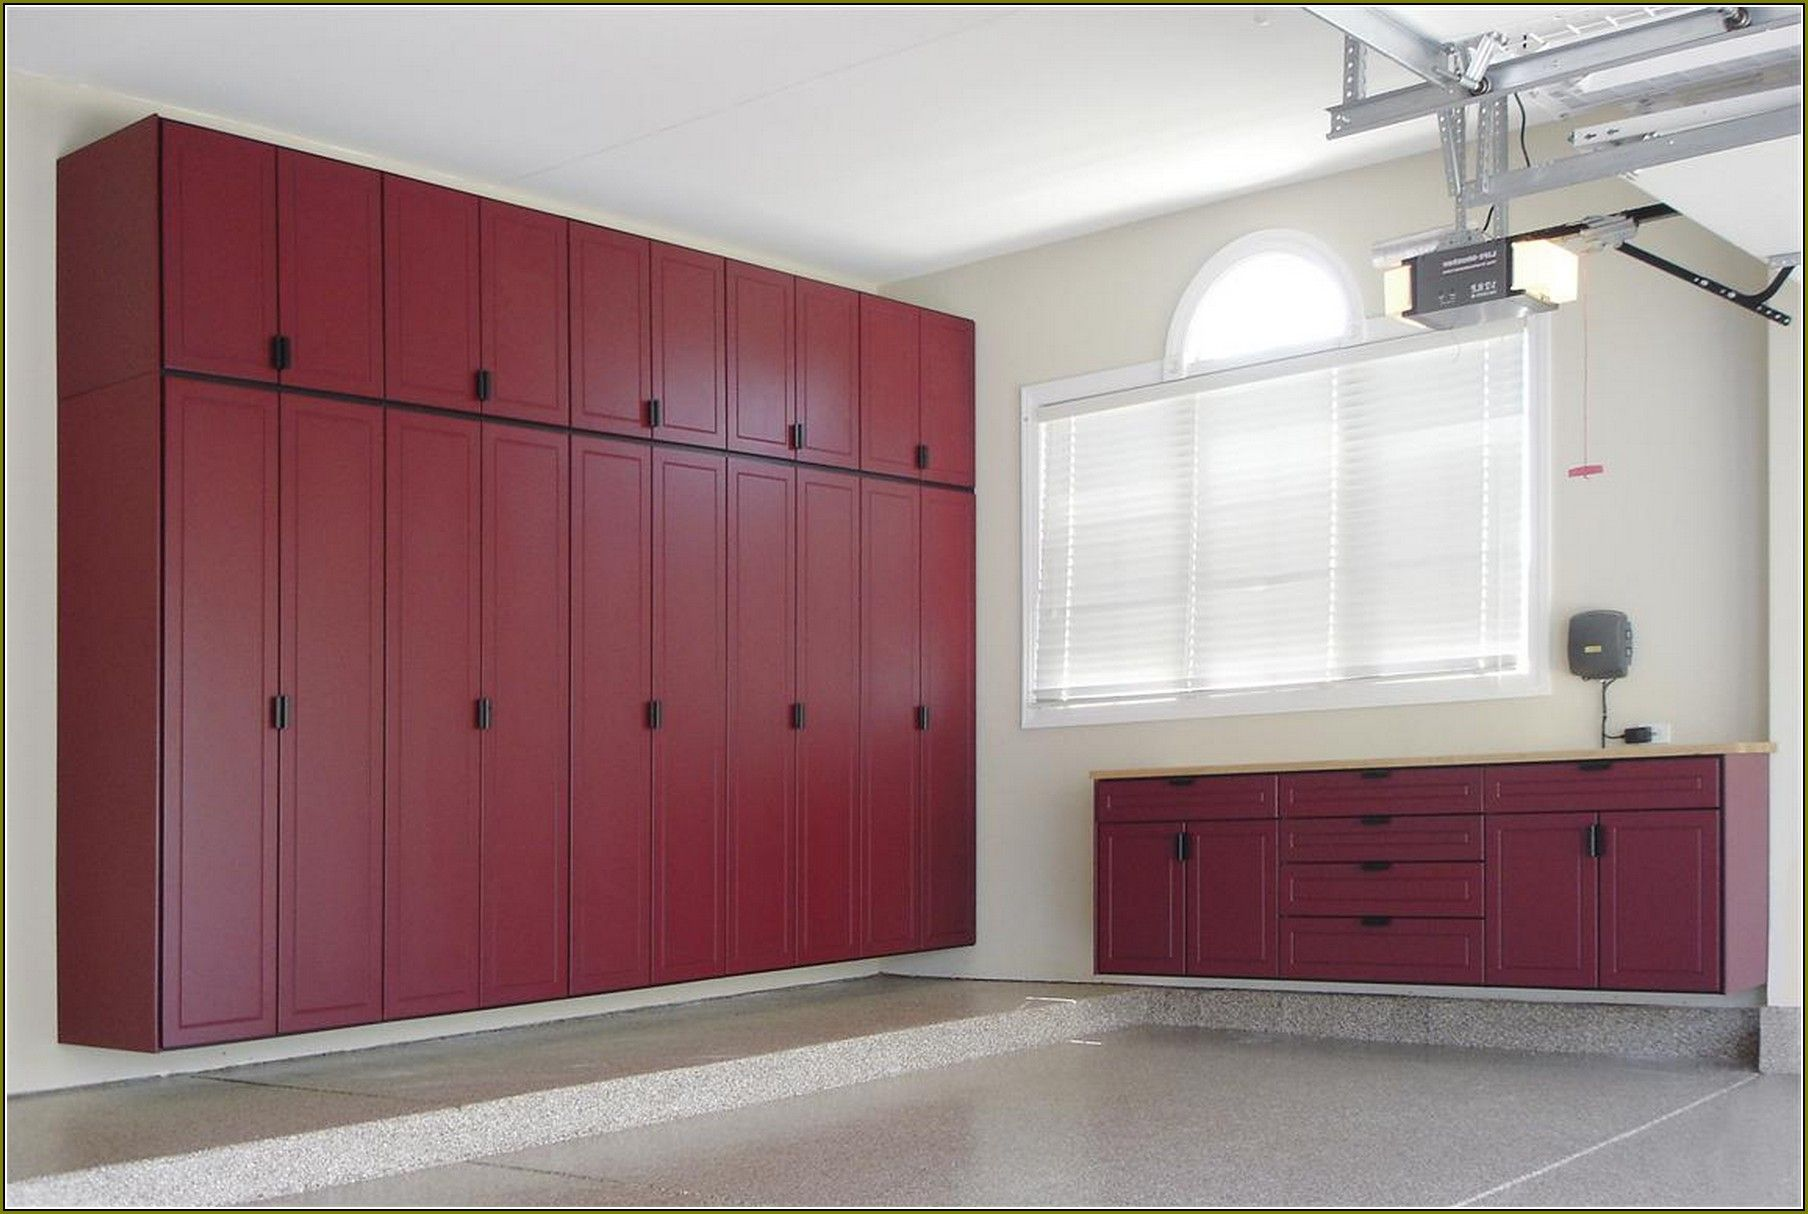 Garage Cabinets Plans Plywood  House Ideas  Pinterest